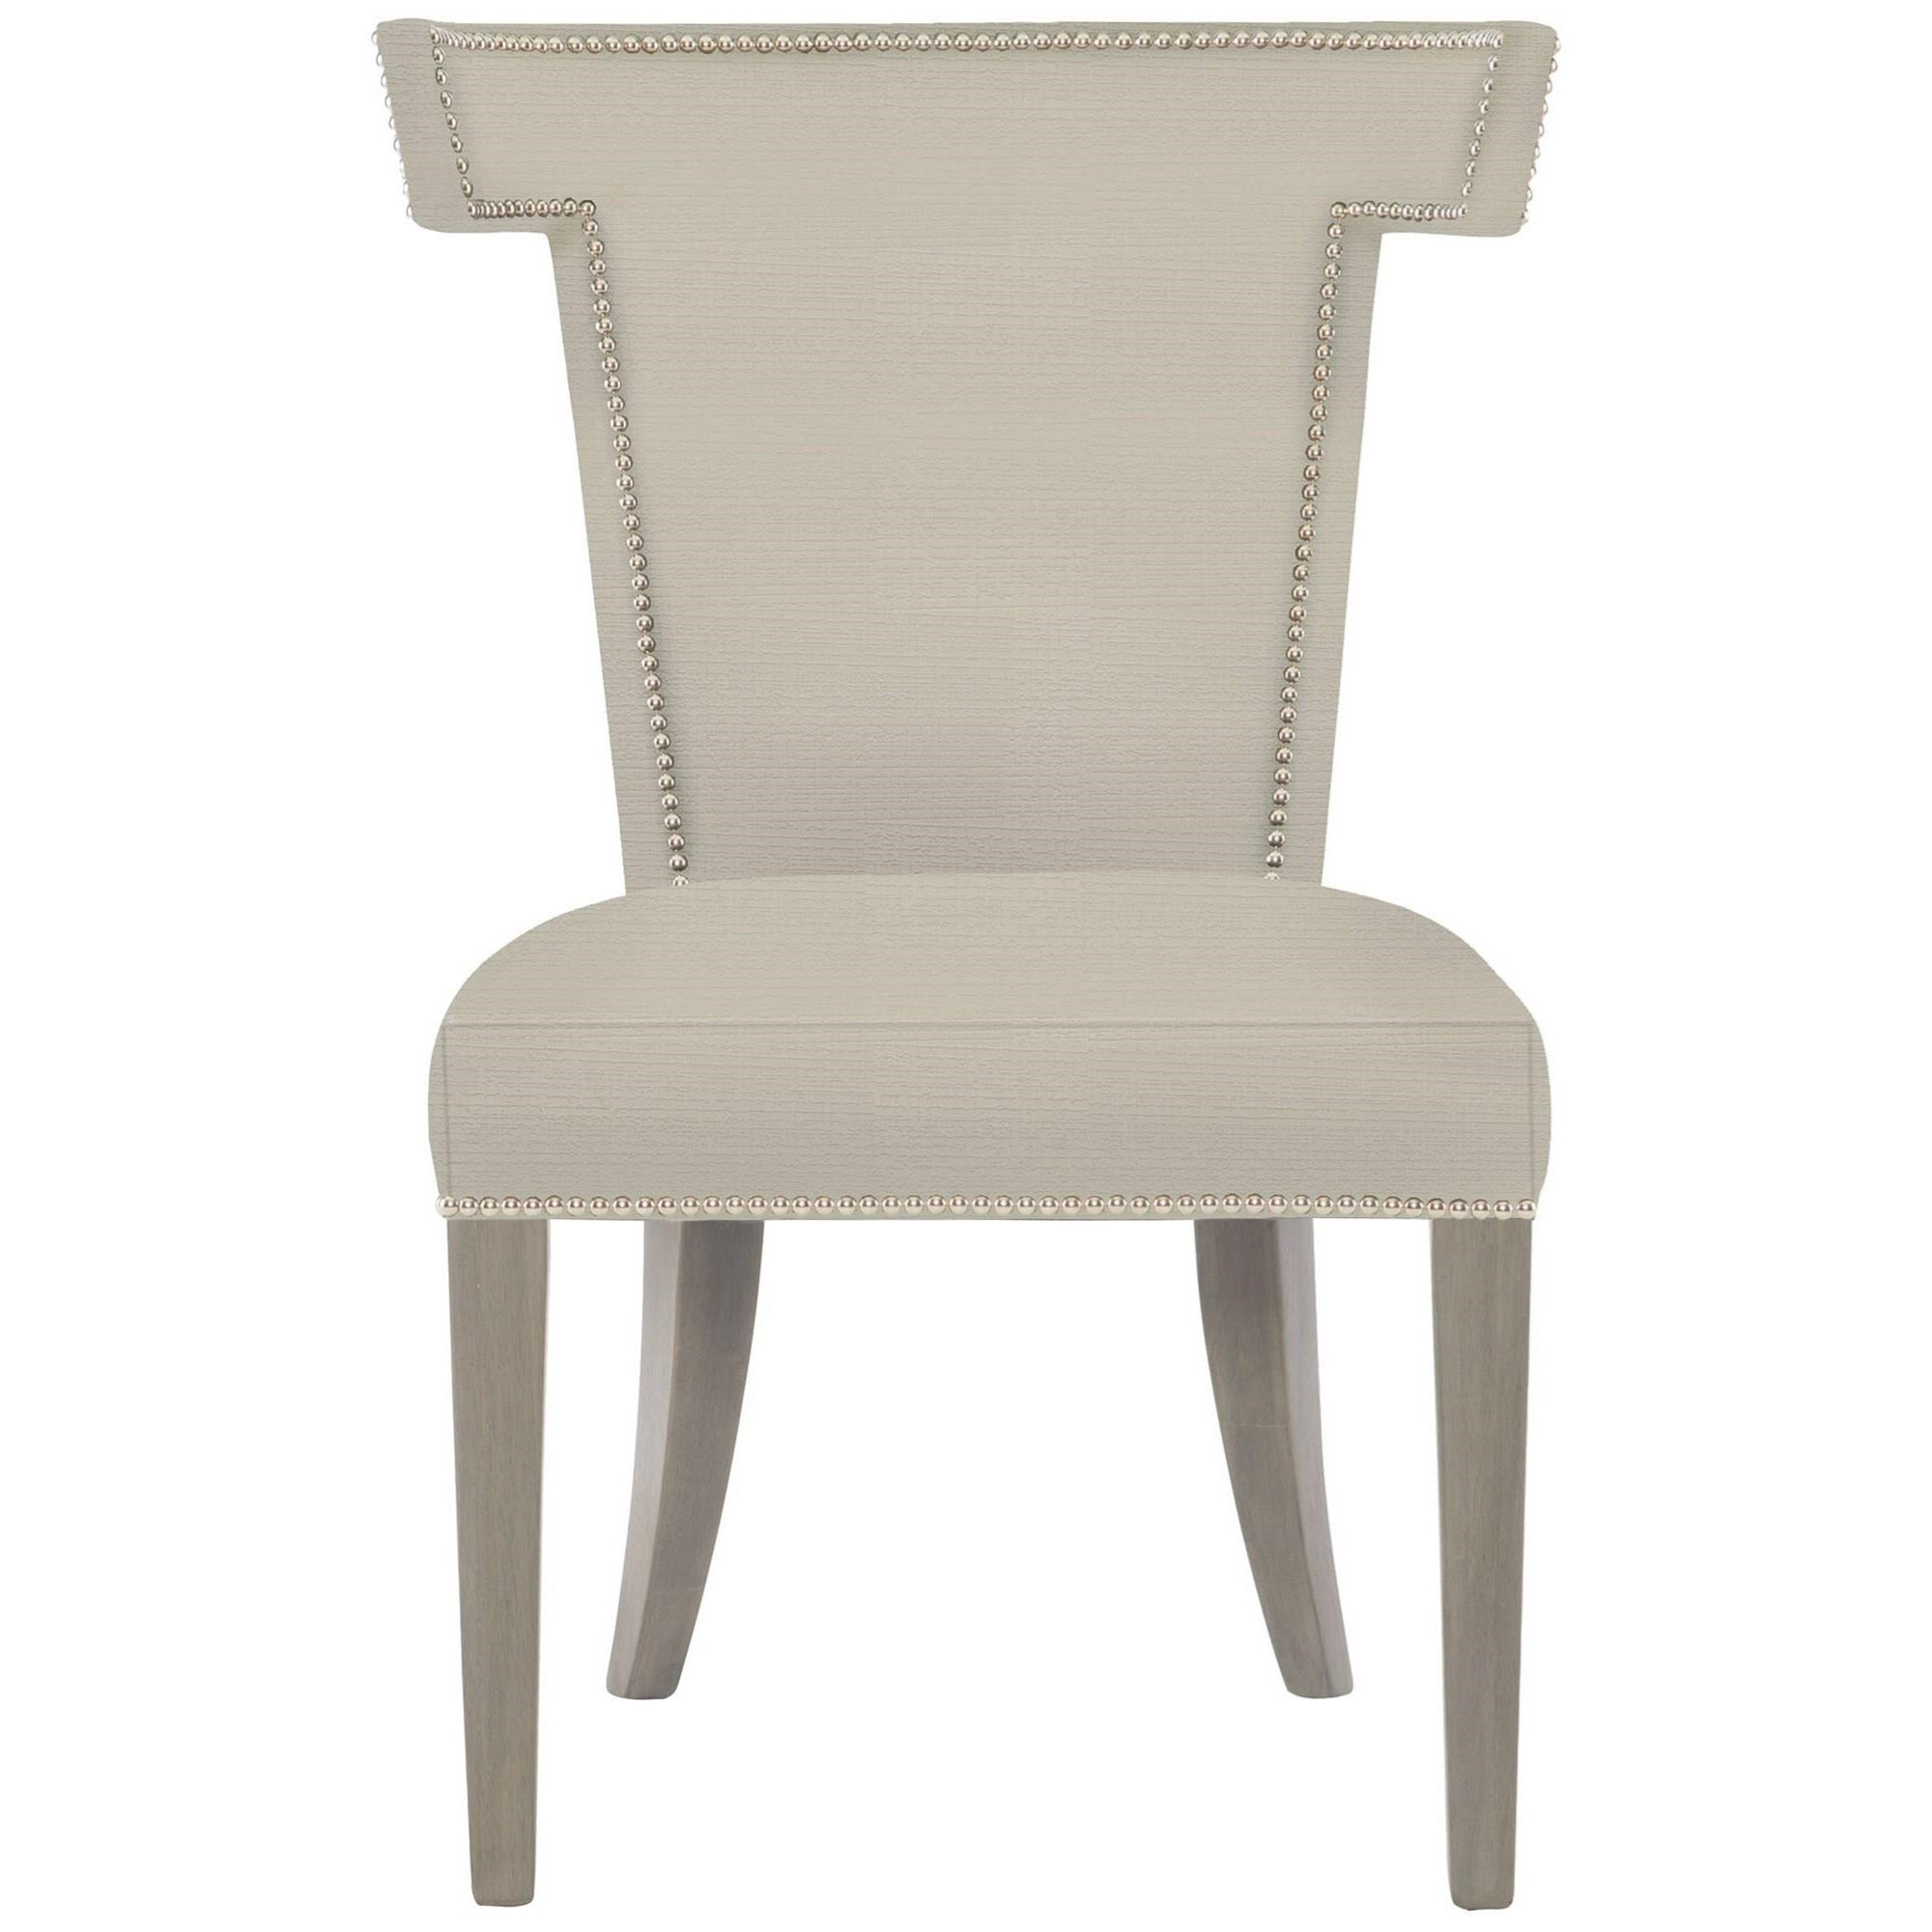 Interiors - Remy Dining Side Chair by Bernhardt at Belfort Furniture